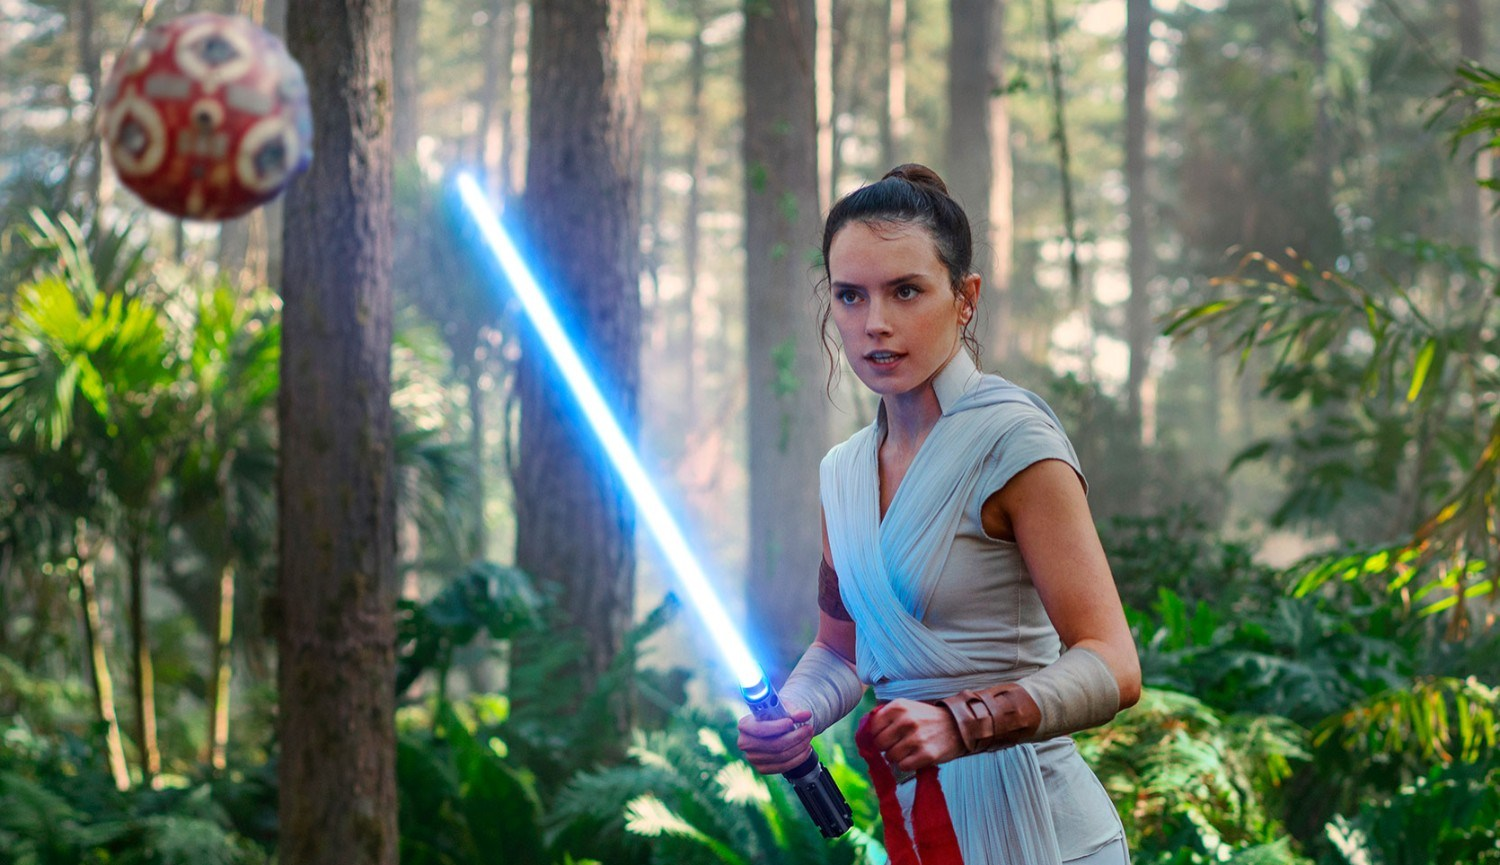 Daisy Ridley in Star Wars: Episode IX - The Rise of Skywalker (2019)